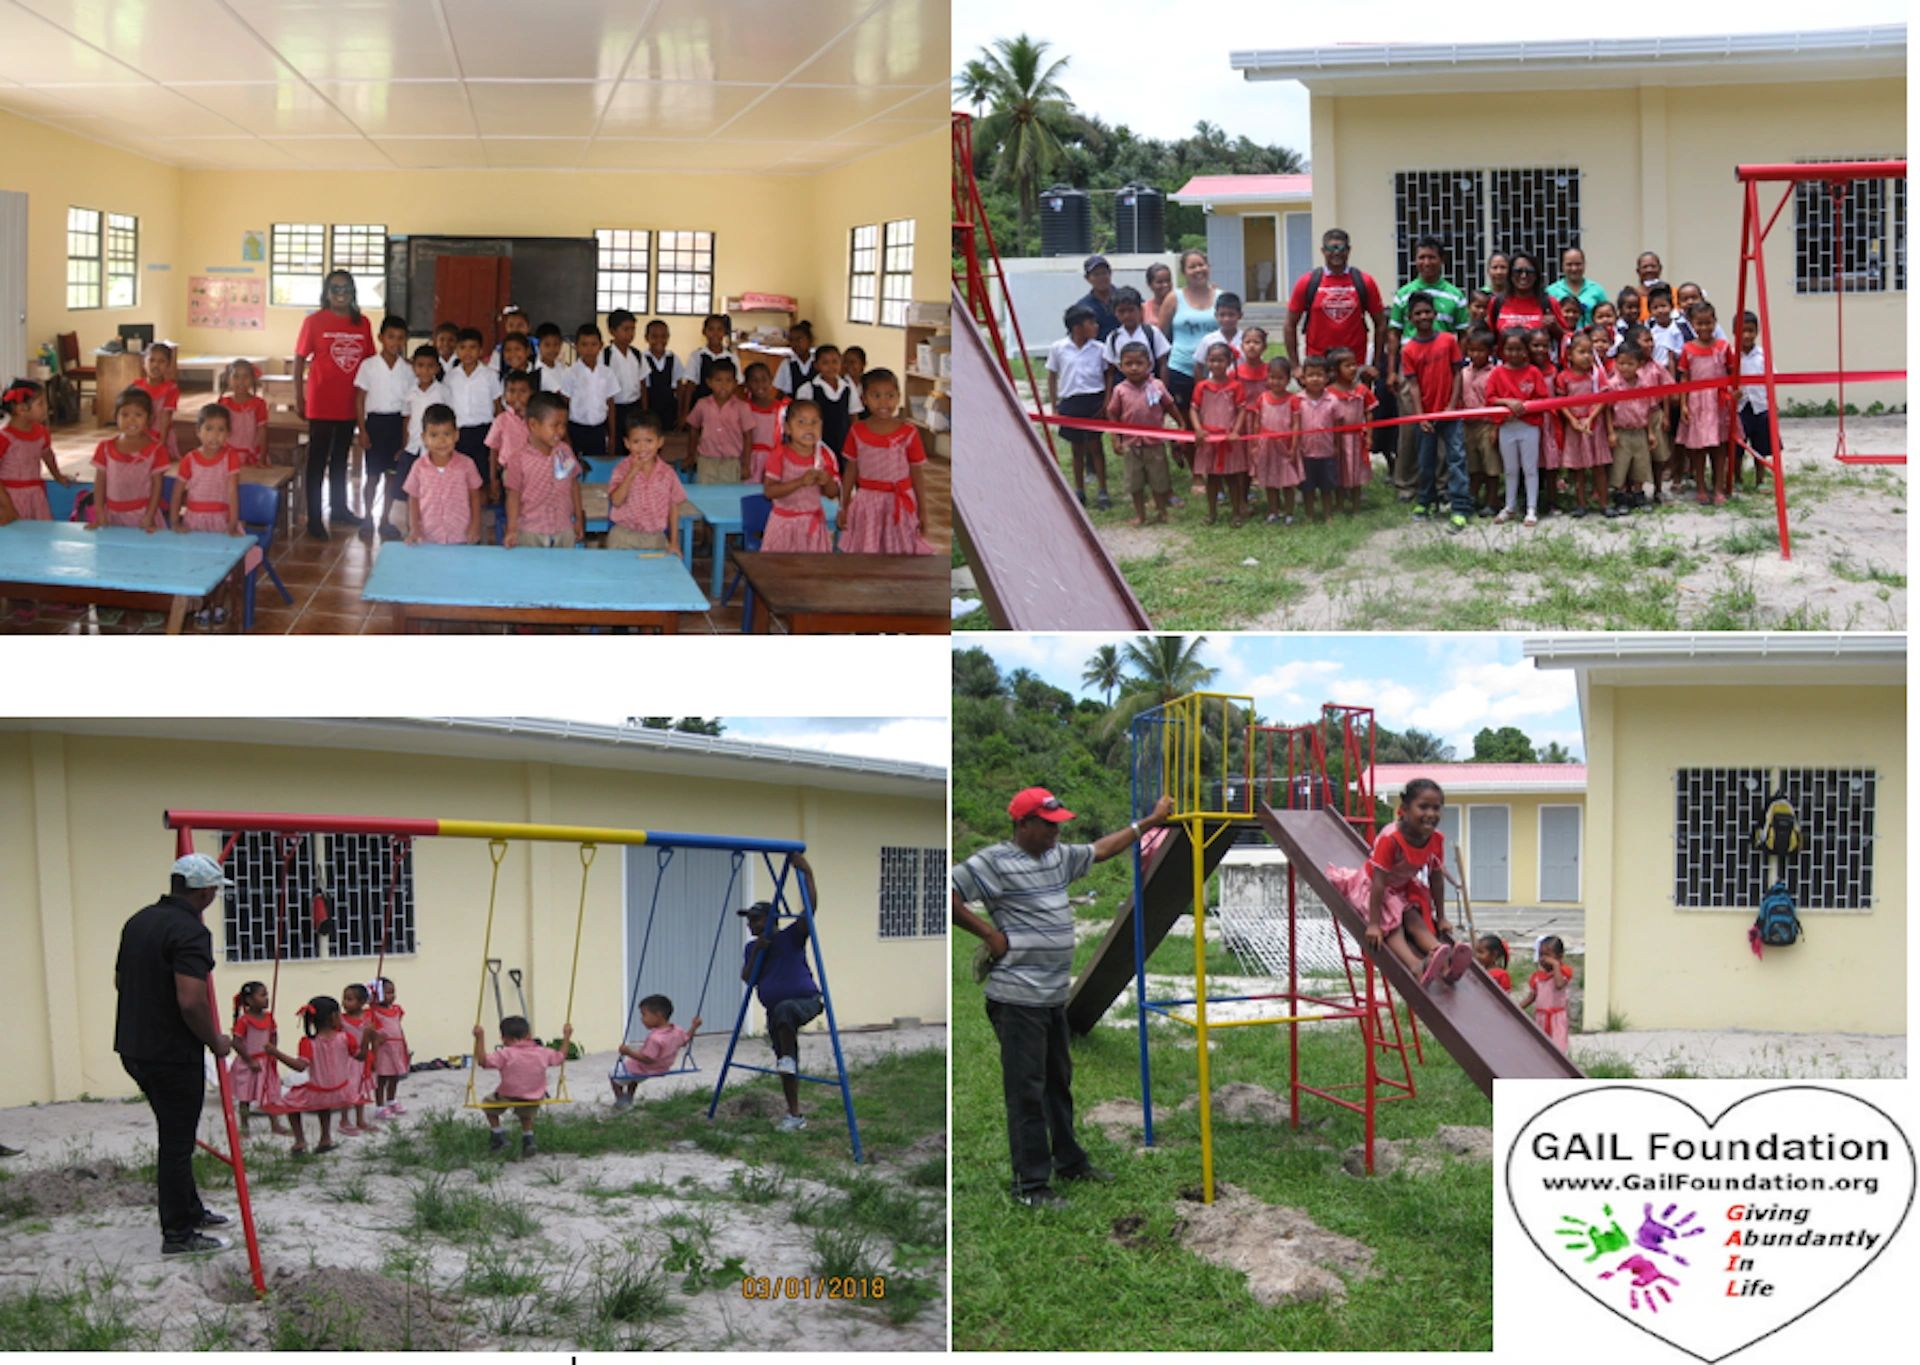 "{""blocks"":[{""key"":""eon53"",""text"":""2018 SIPARUTA NURSERY SCHOOL in Guyana, South America received a 3 seater swing, double sea-saw, double slide and toys for 30 children.  These children live in a rainforest type village that is a 4 hour boat ride from the mainland.  This was the first outdoor play equipment on the remote island, where some individuals still live in tents."",""type"":""unstyled"",""depth"":0,""inlineStyleRanges"":[{""offset"":0,""length"":38,""style"":""BOLD""},{""offset"":0,""length"":38,""style"":""UNDERLINE""}],""entityRanges"":[],""data"":{}}],""entityMap"":{}}"